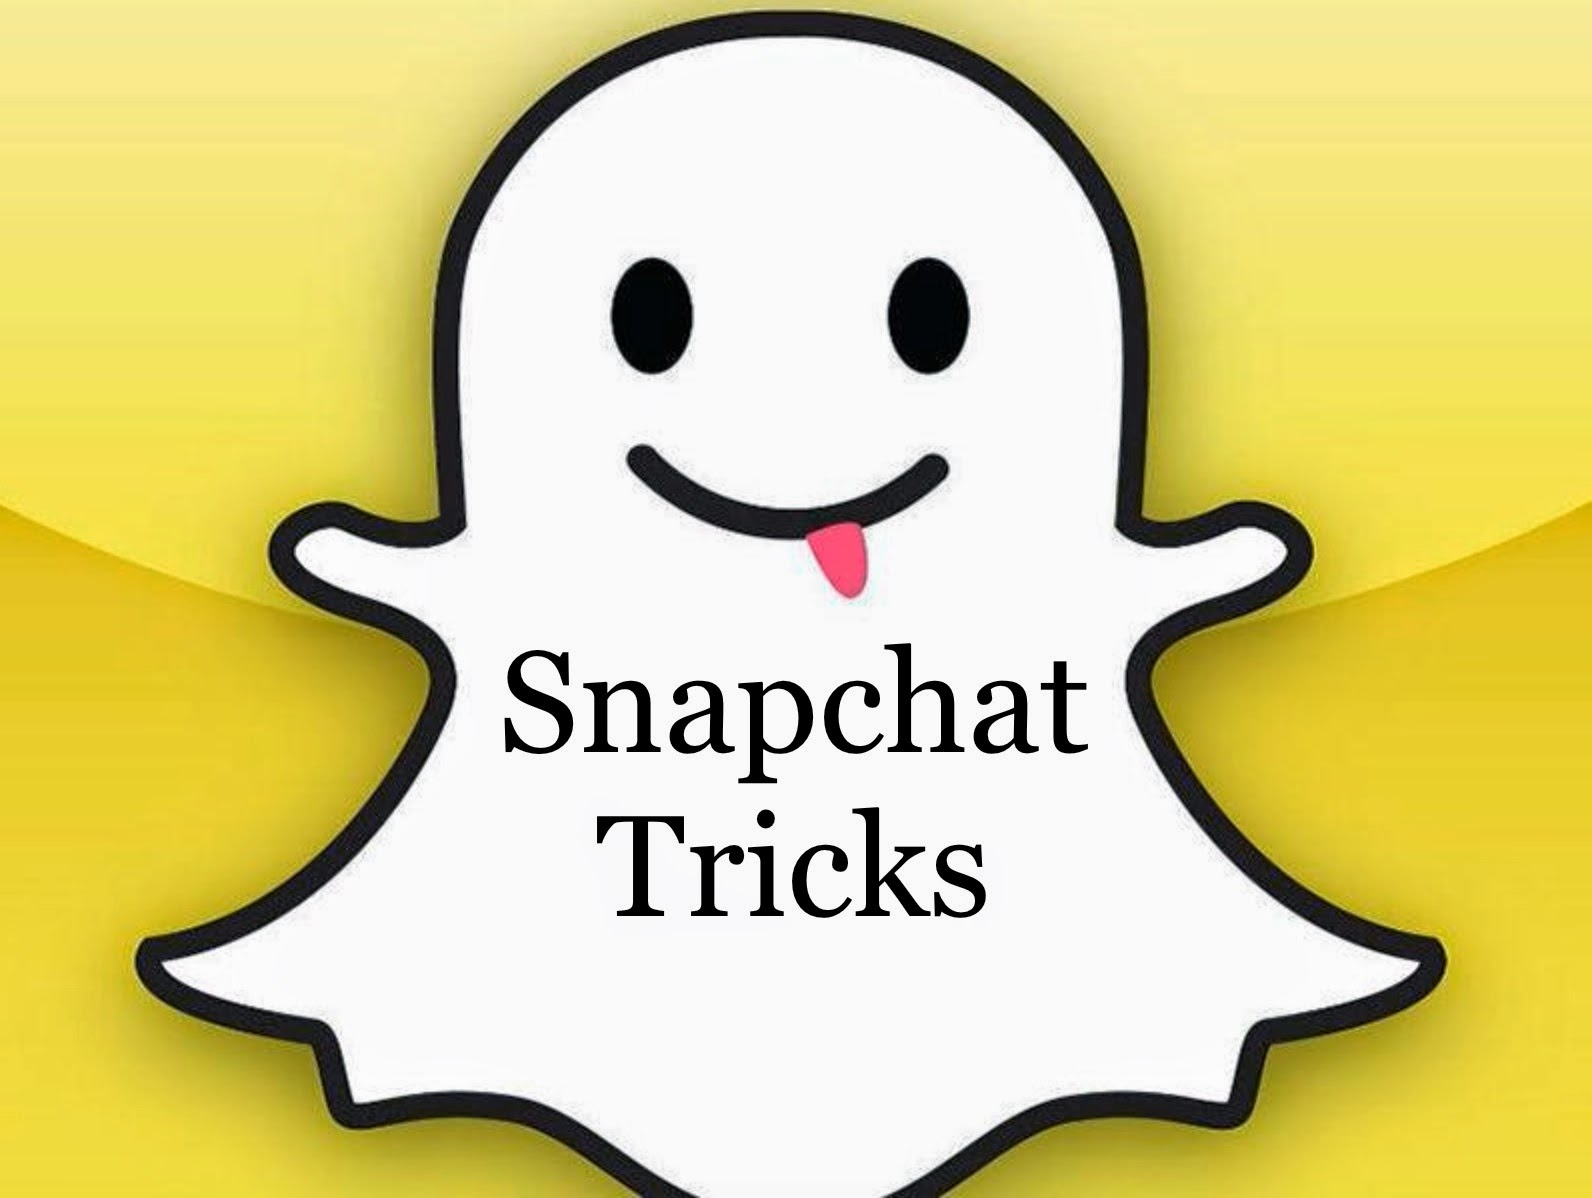 Top 10 Best Snapchat tricks of 2015